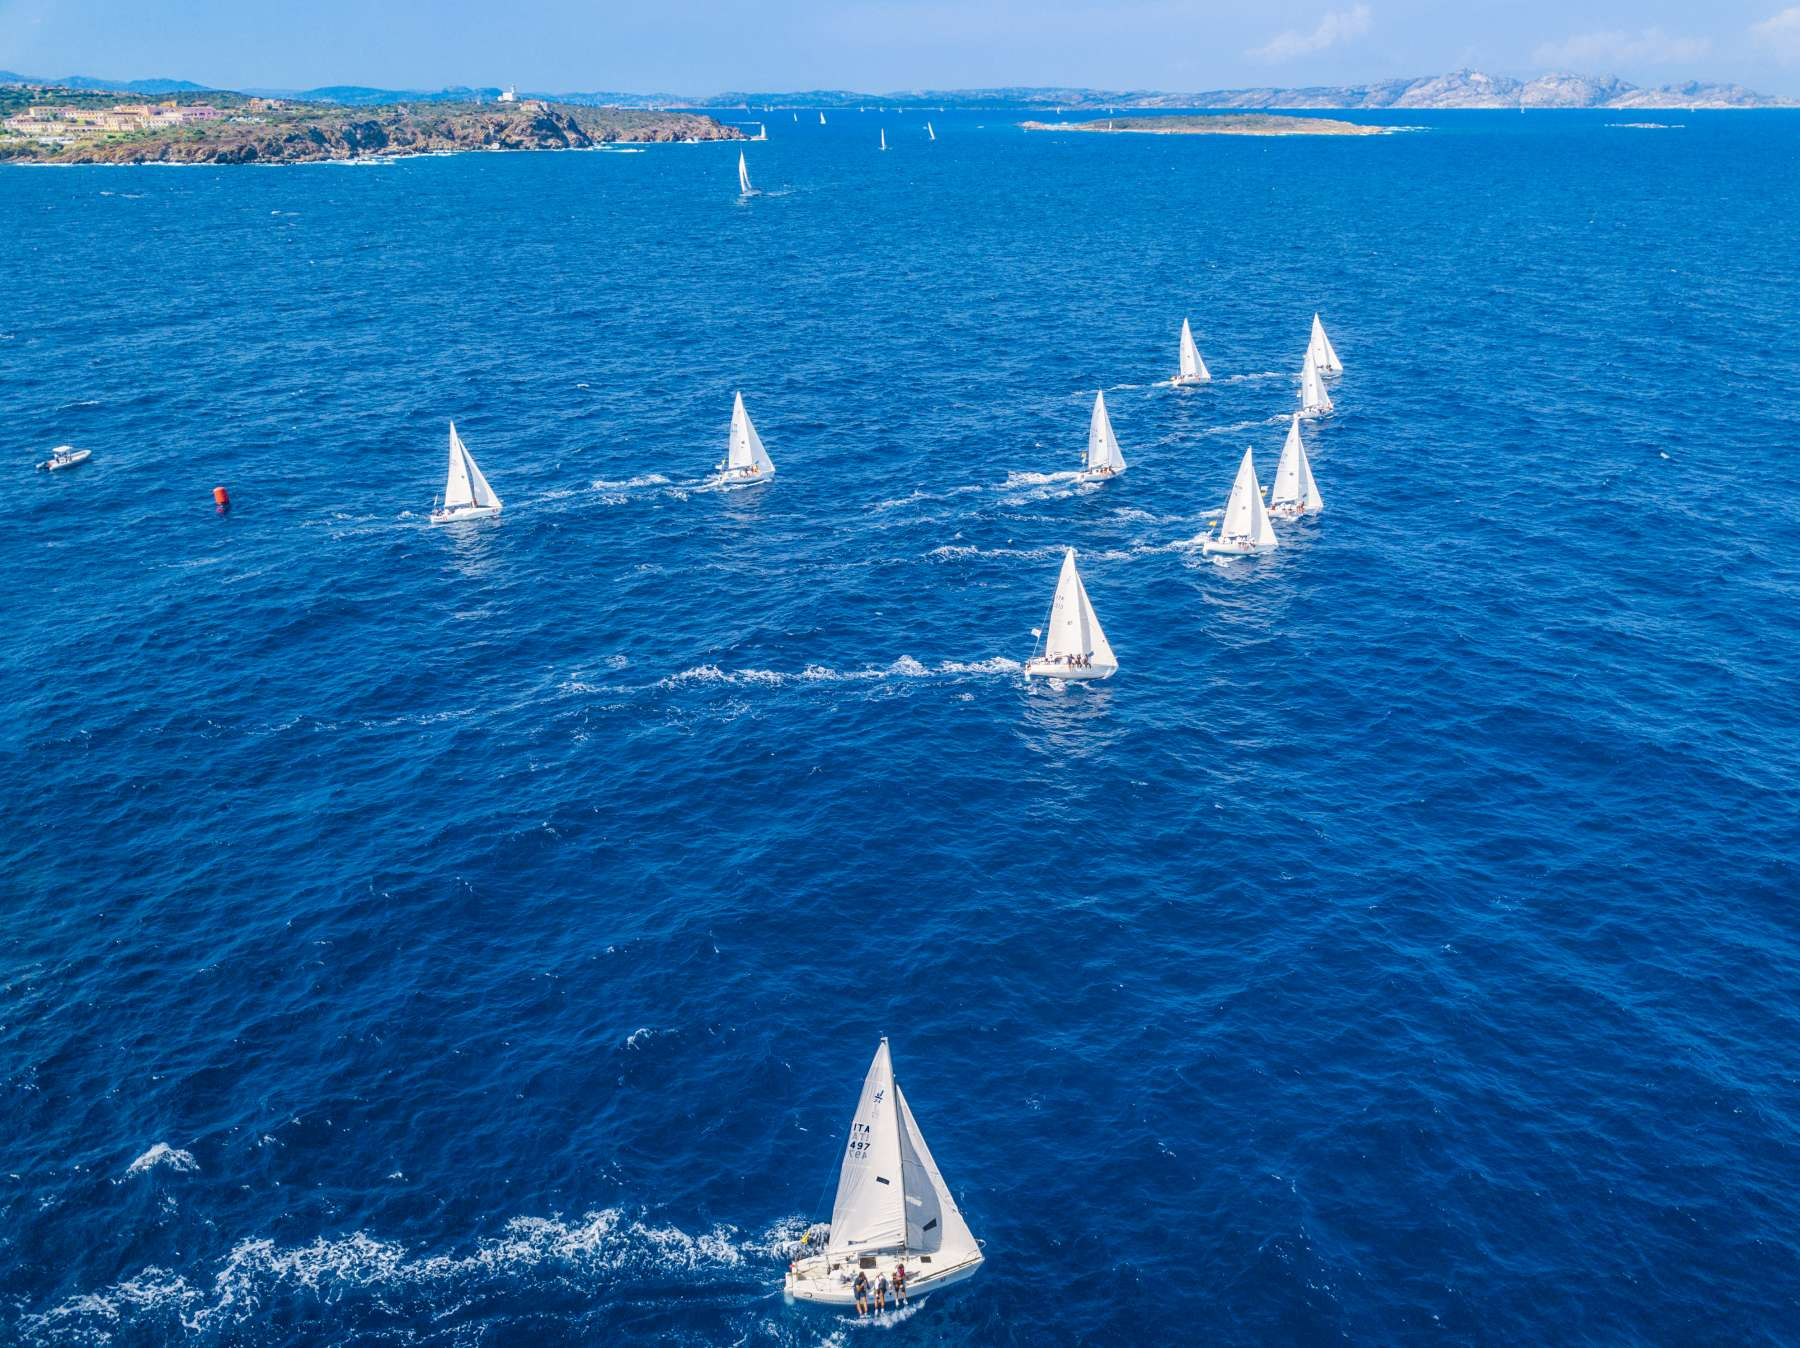 Iniziata oggi la One Ocean MBA's Conference and Regatta - NEWS - Yacht Club Costa Smeralda